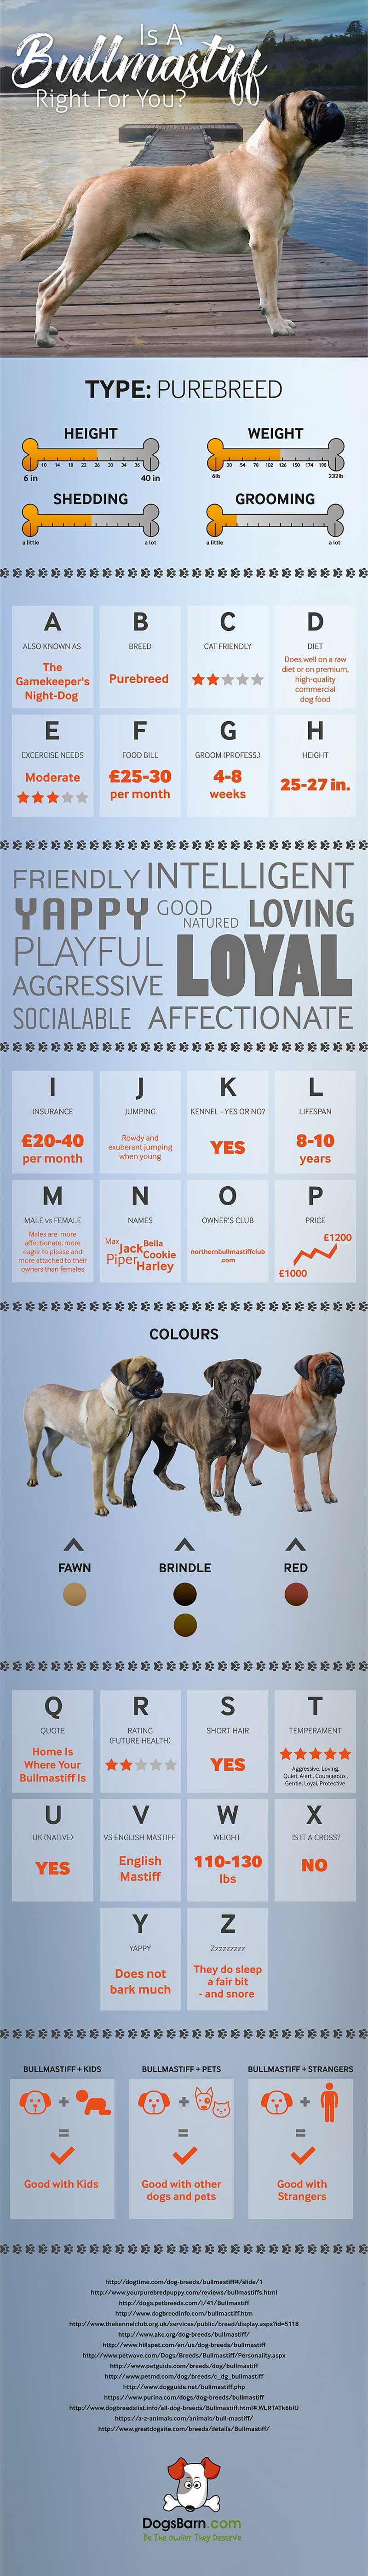 Bullmastiff Dog Breed Infographic